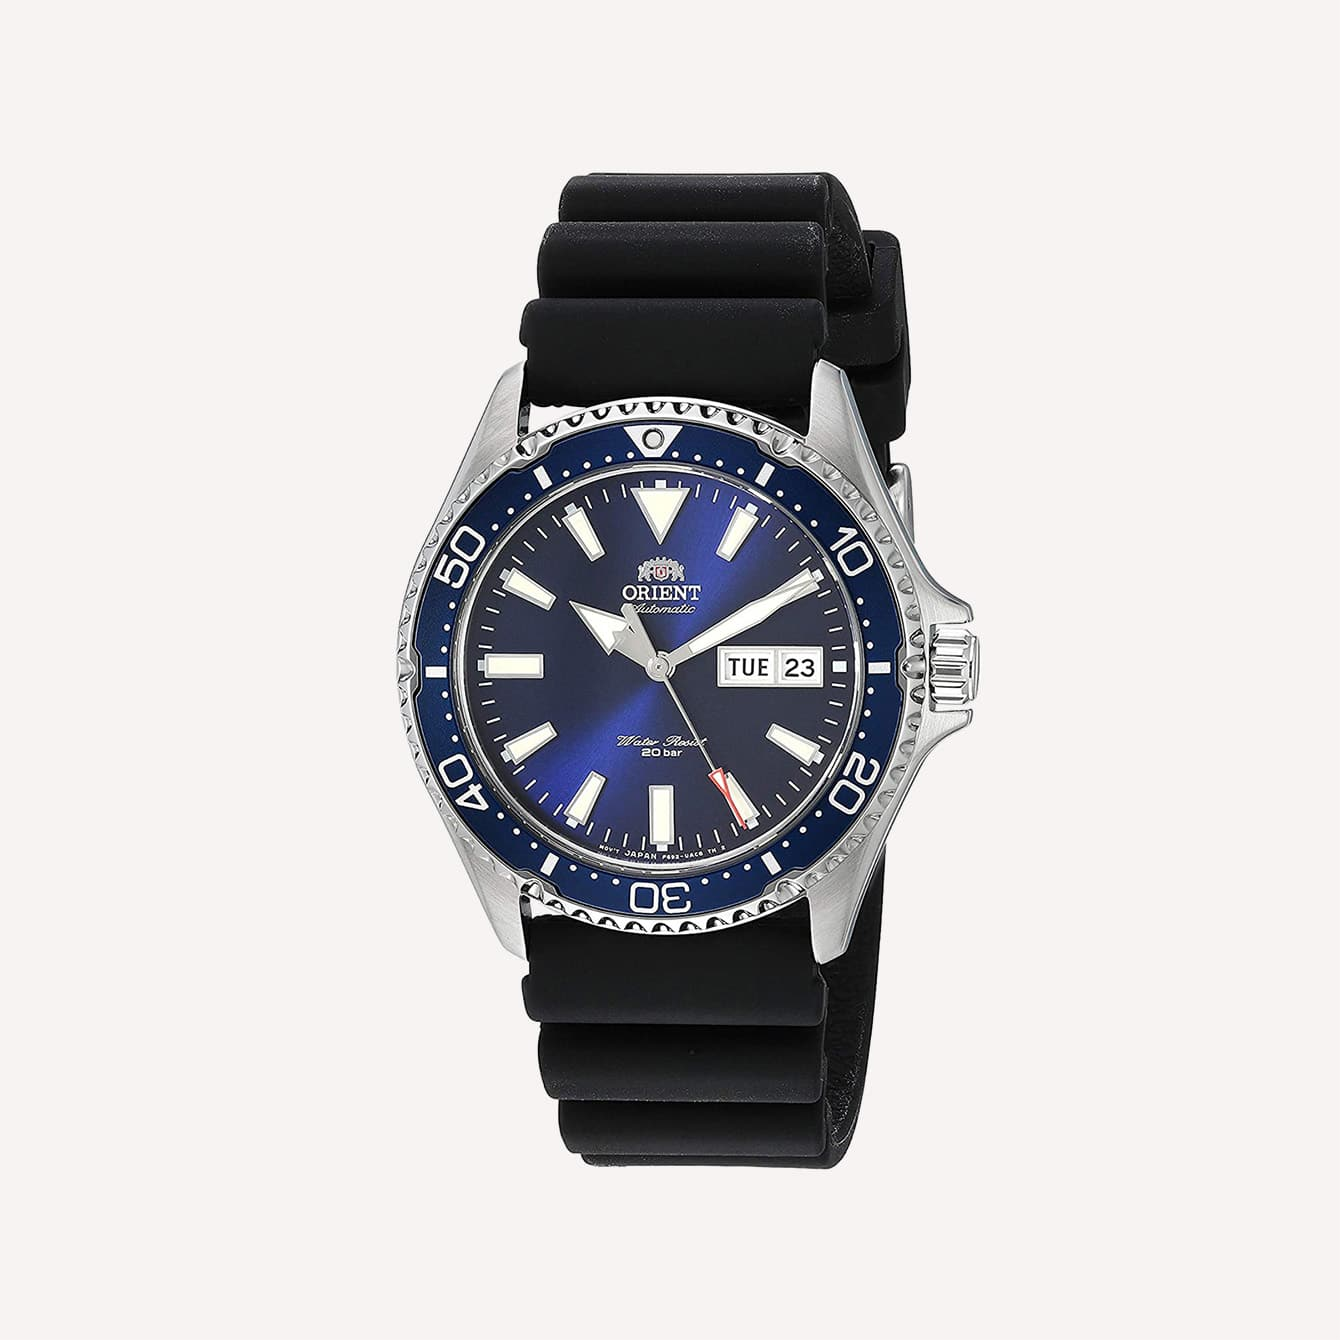 ORIENT MENS KAMASU STAINLESS STEEL JAPANESE AUTOMATIC DIVING WATCH